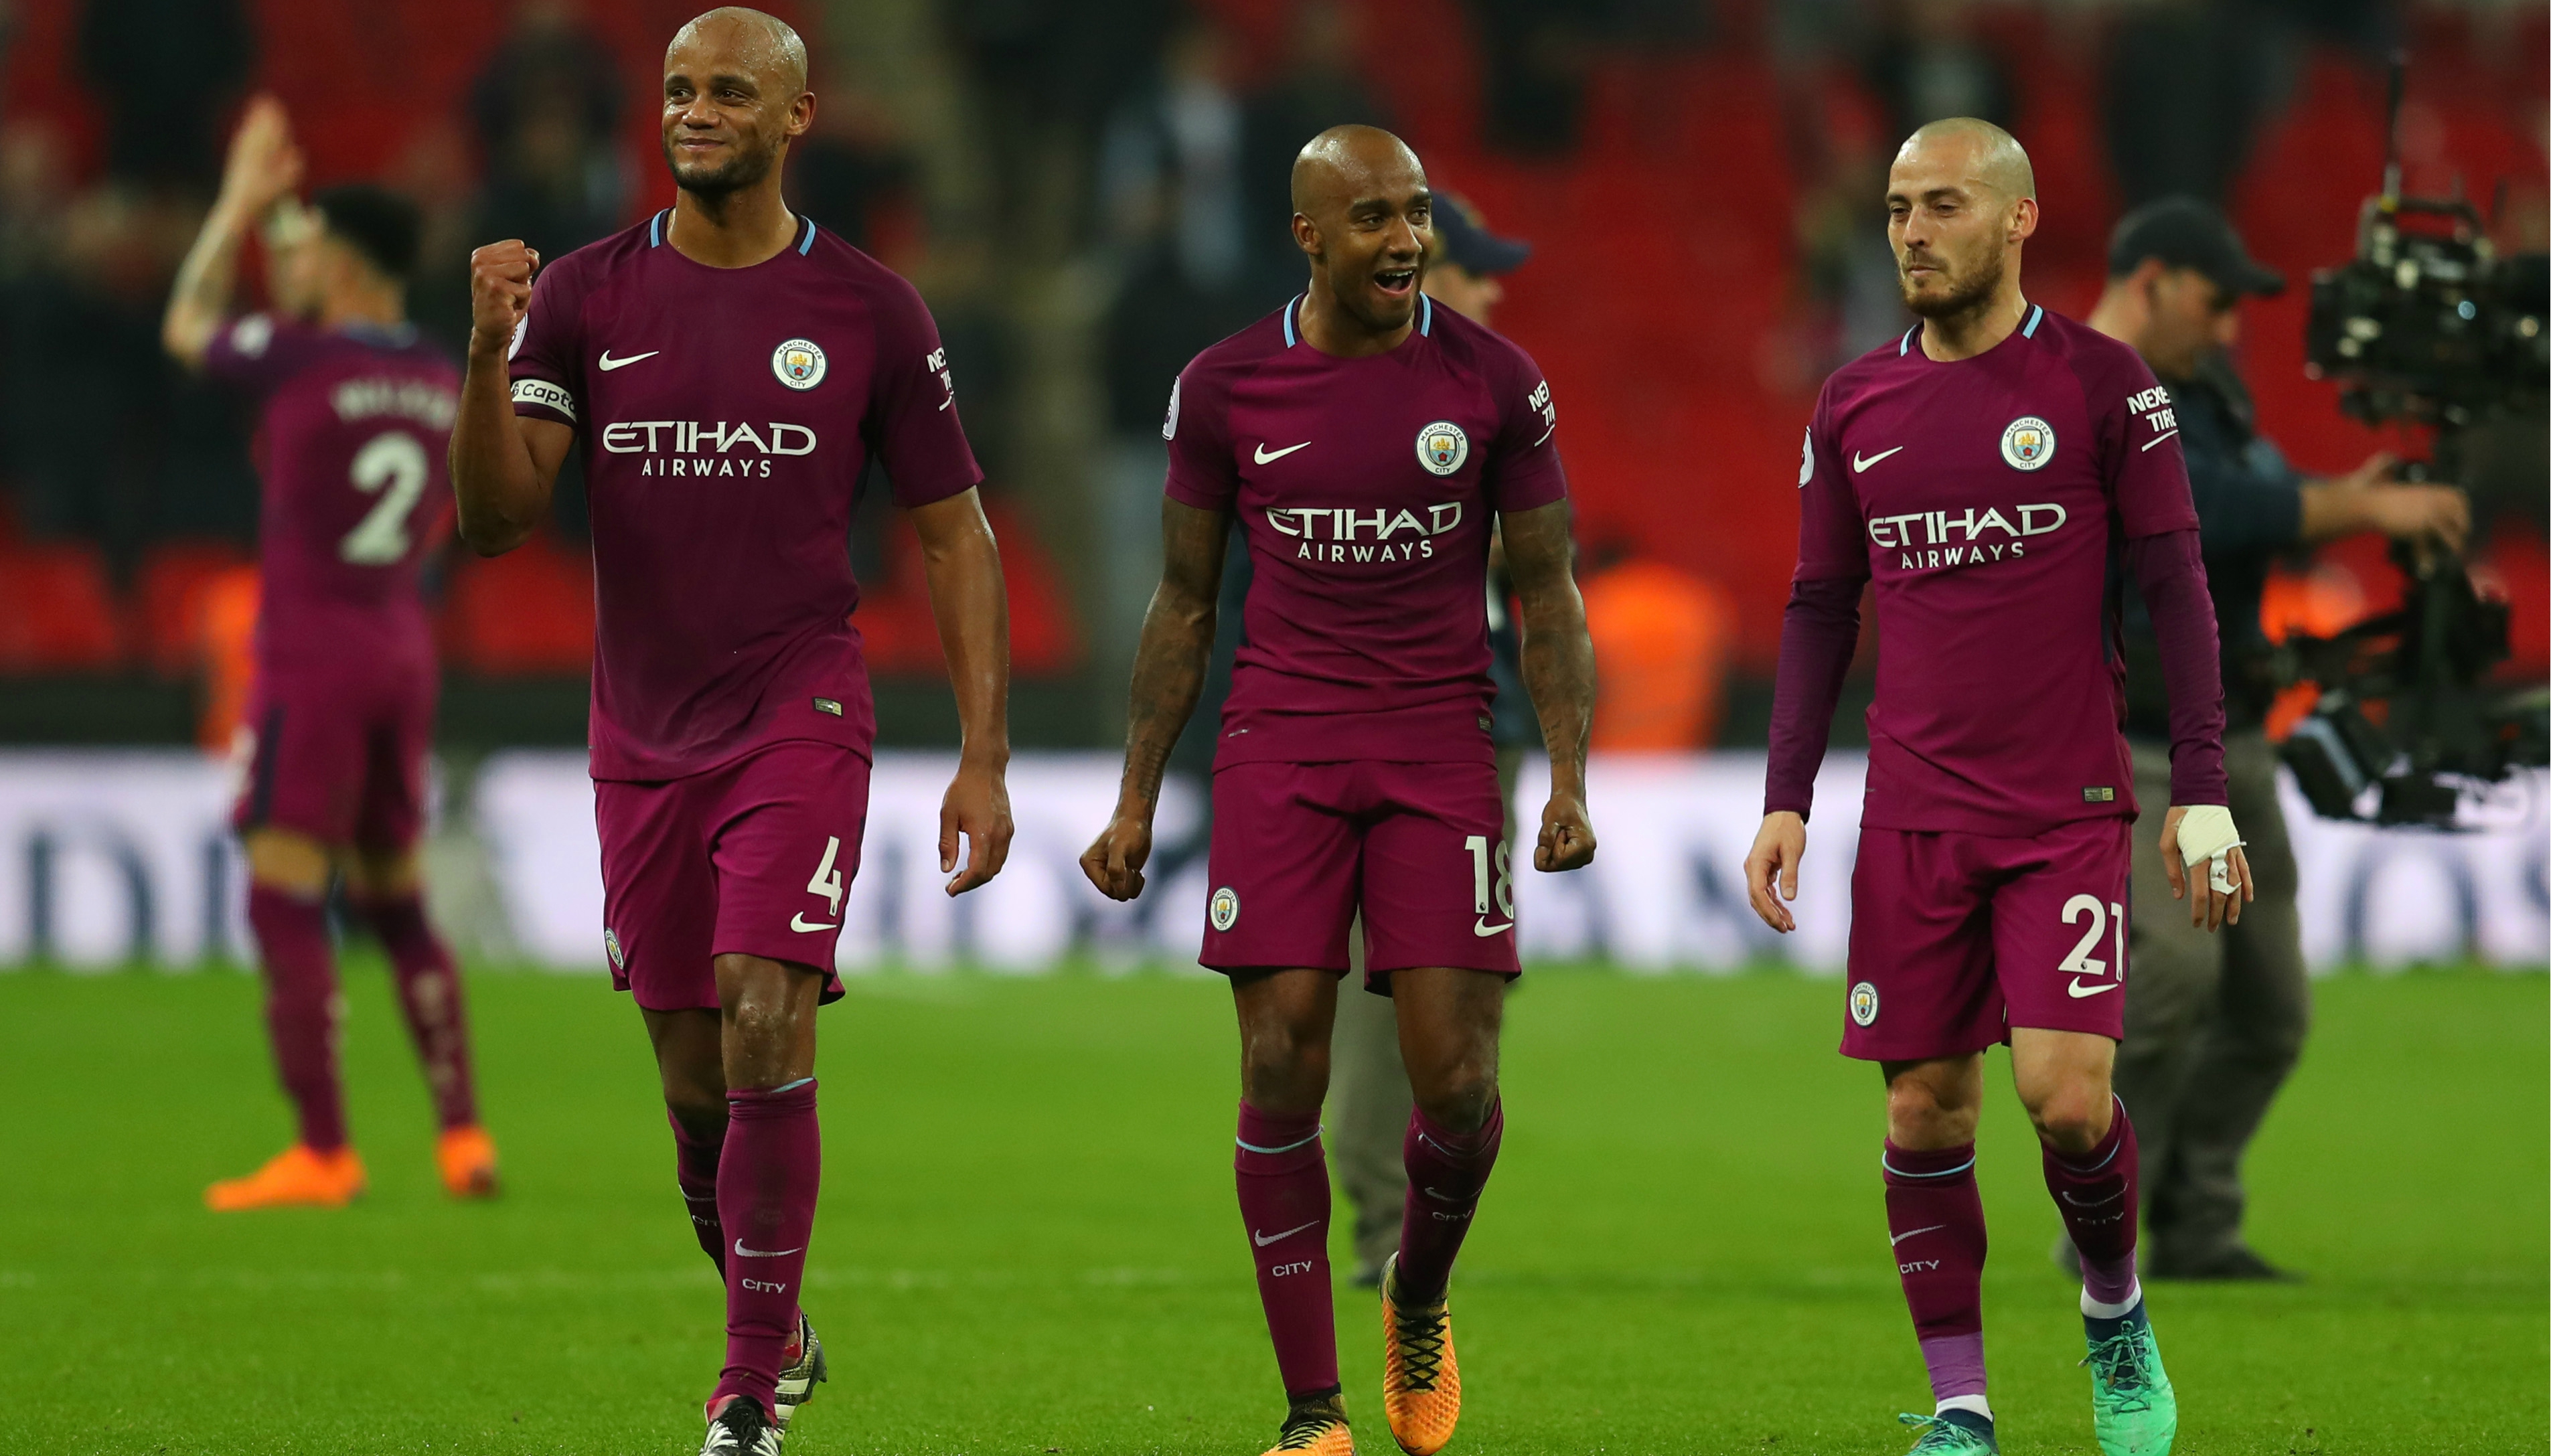 Manchester City win the title: How pundits, managers, players reacted